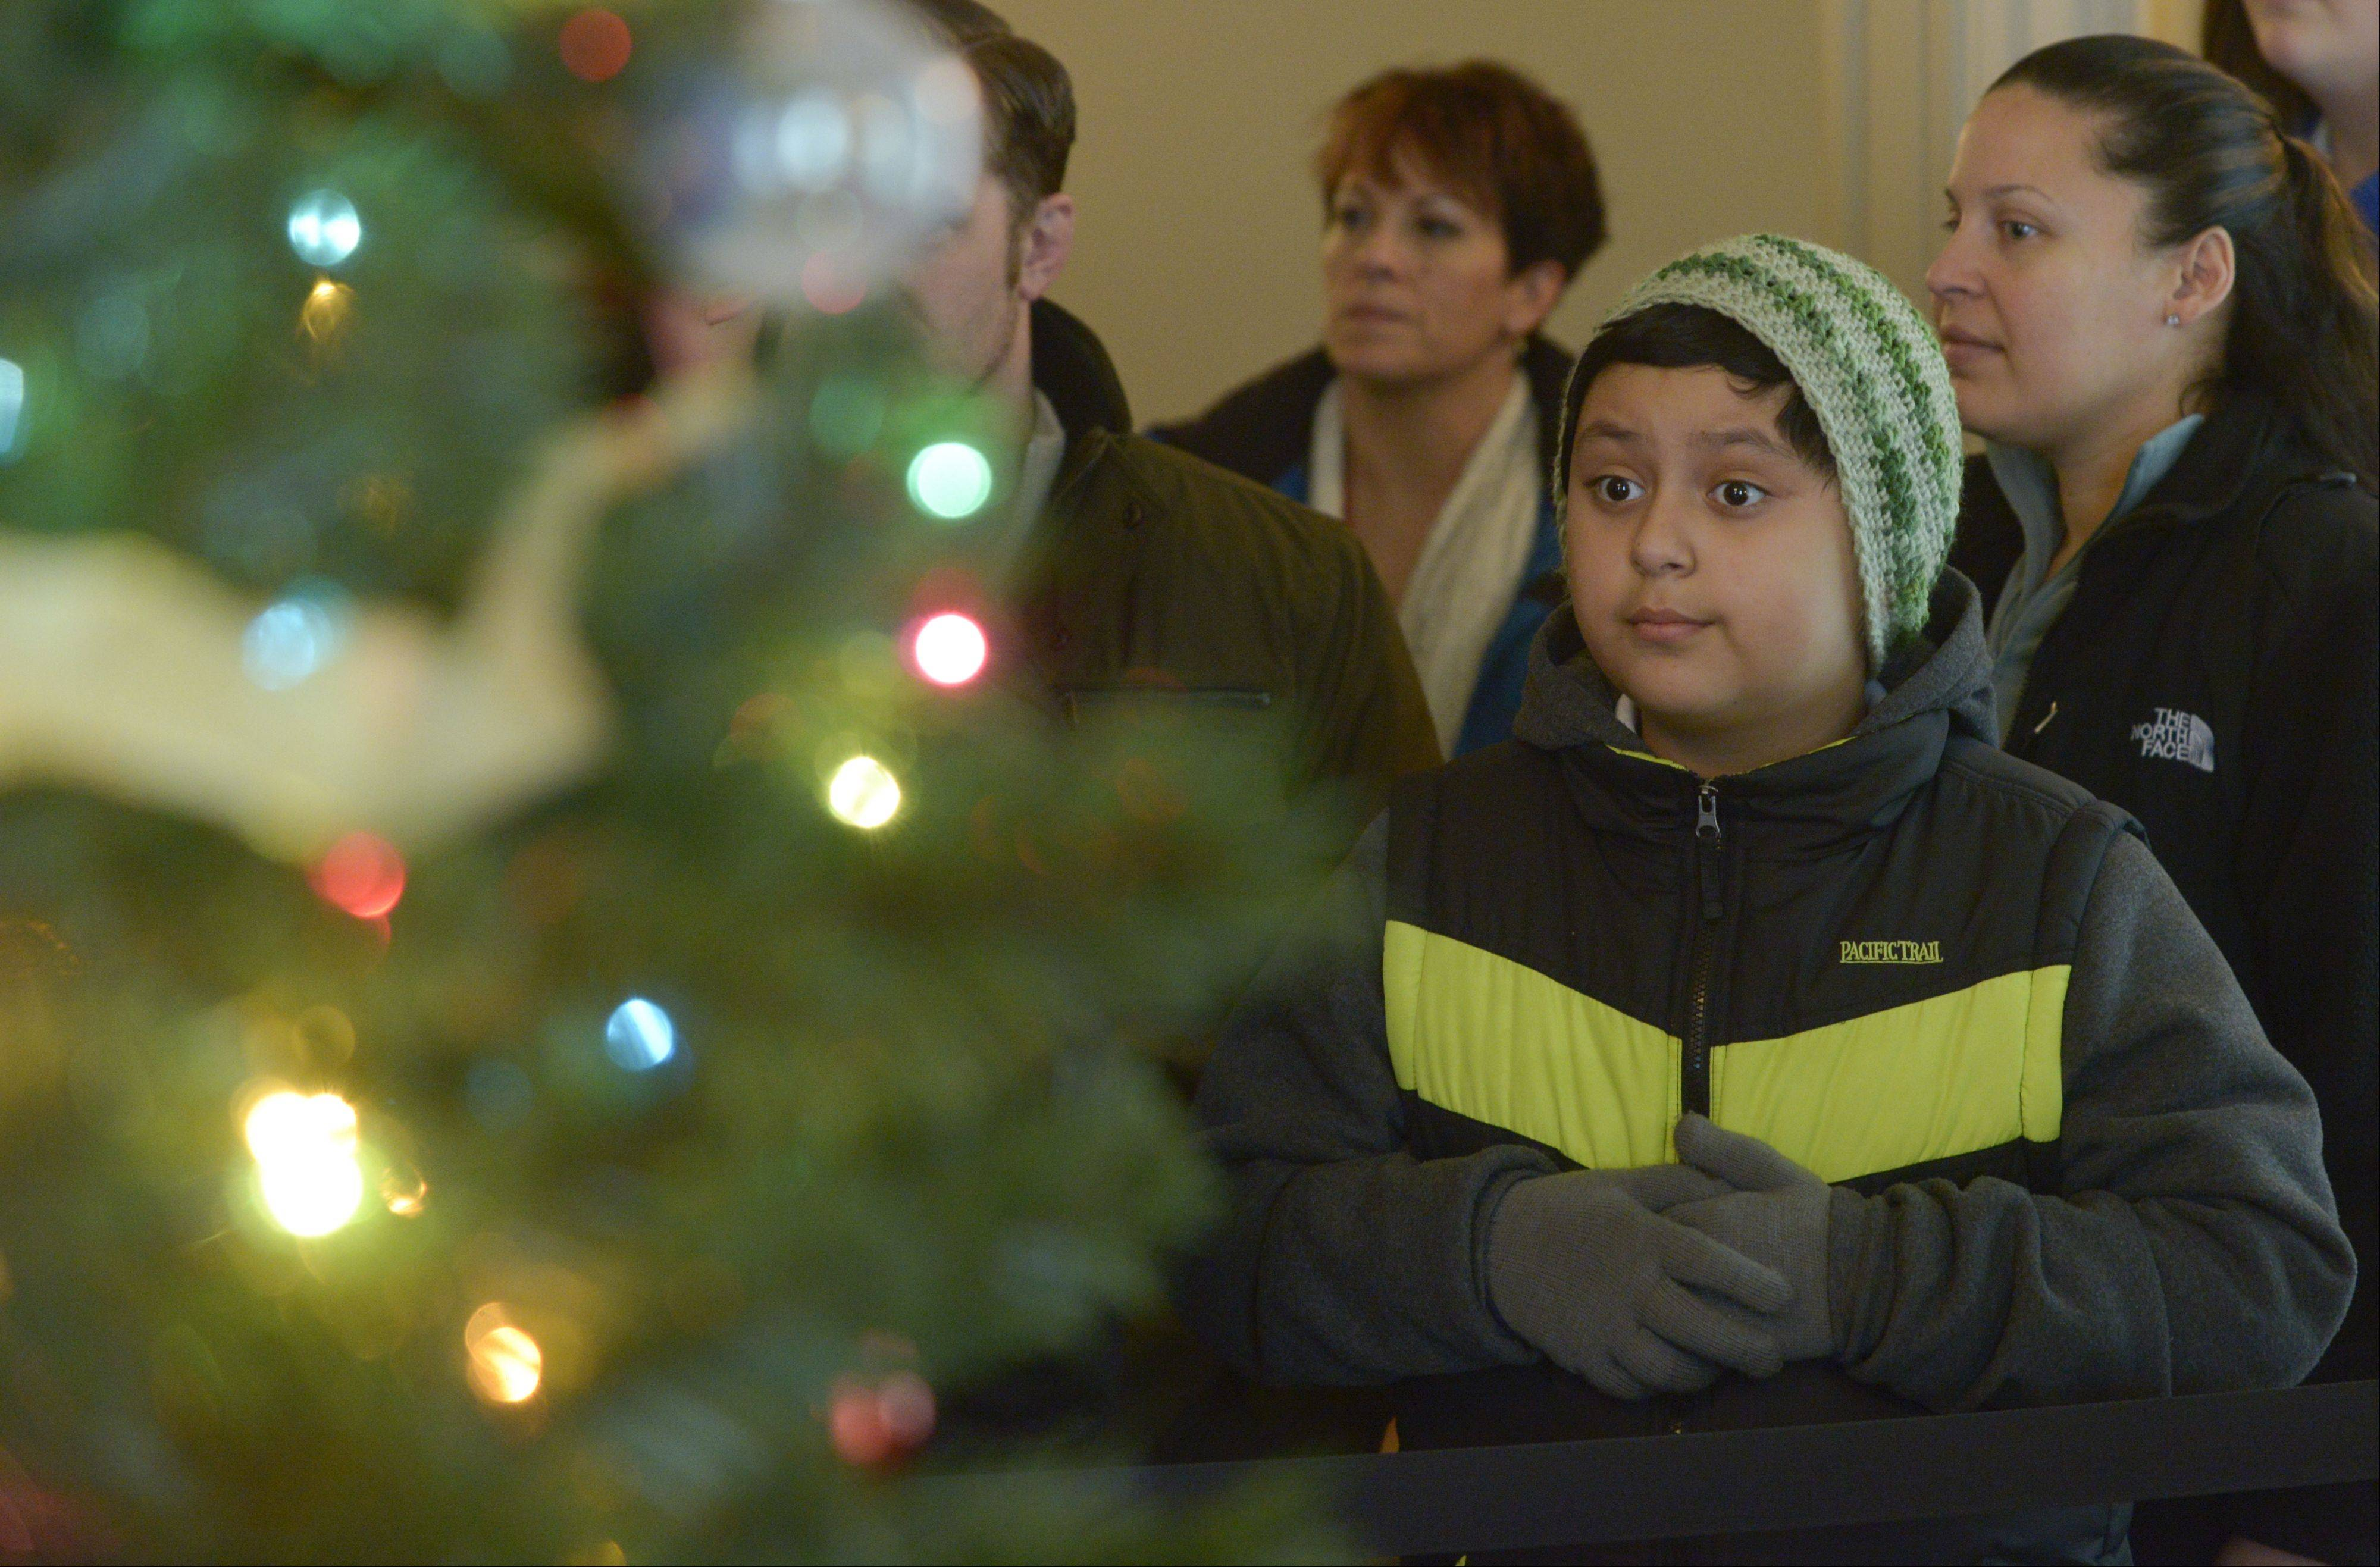 Devin Alarcon, 12, views one of the seven decorated Christmas trees on display Tuesday in the Robert R. McCormick Museum in Wheaton's Cantigny Park.